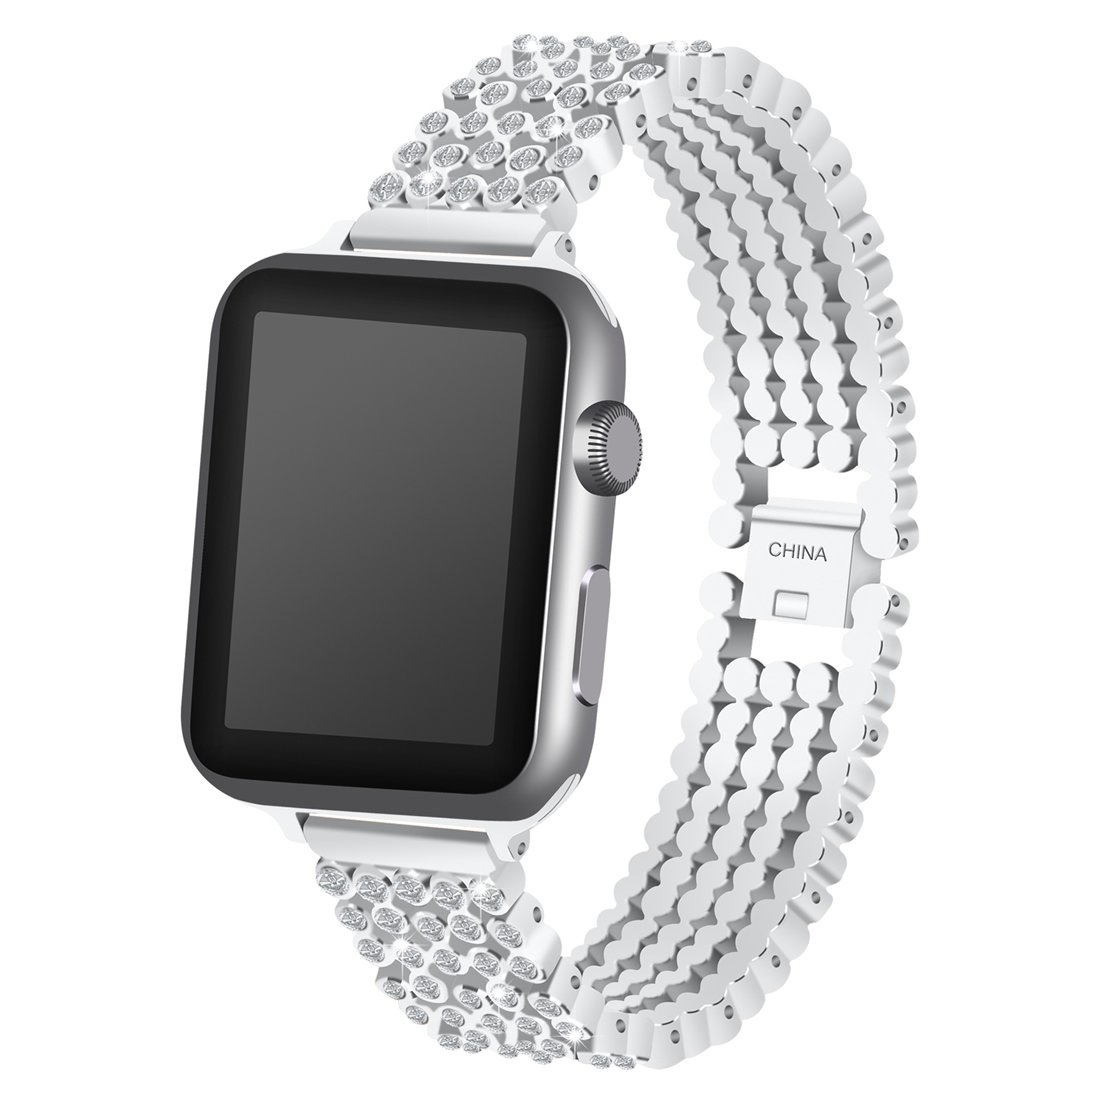 Iwatch Band,Crystal Rhinestone Watch Band Luxury Stainless Steel Bracelet Watch Bands for Smart Watch (Original Color,38mm)